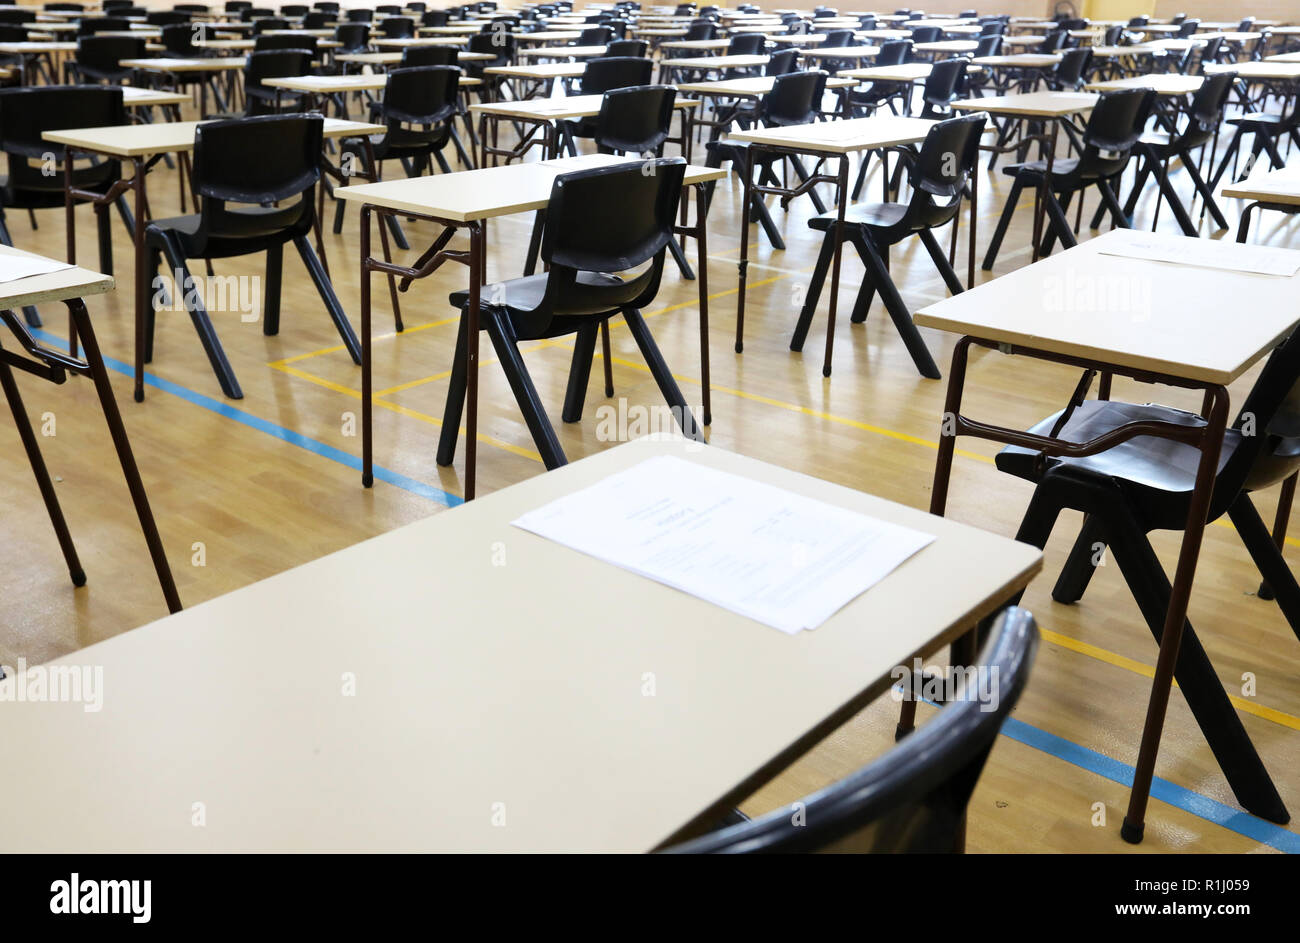 View of large exam room hall and examination desks tables lined up in rows ready for students at a high school to come and sit their exams tests paper - Stock Image